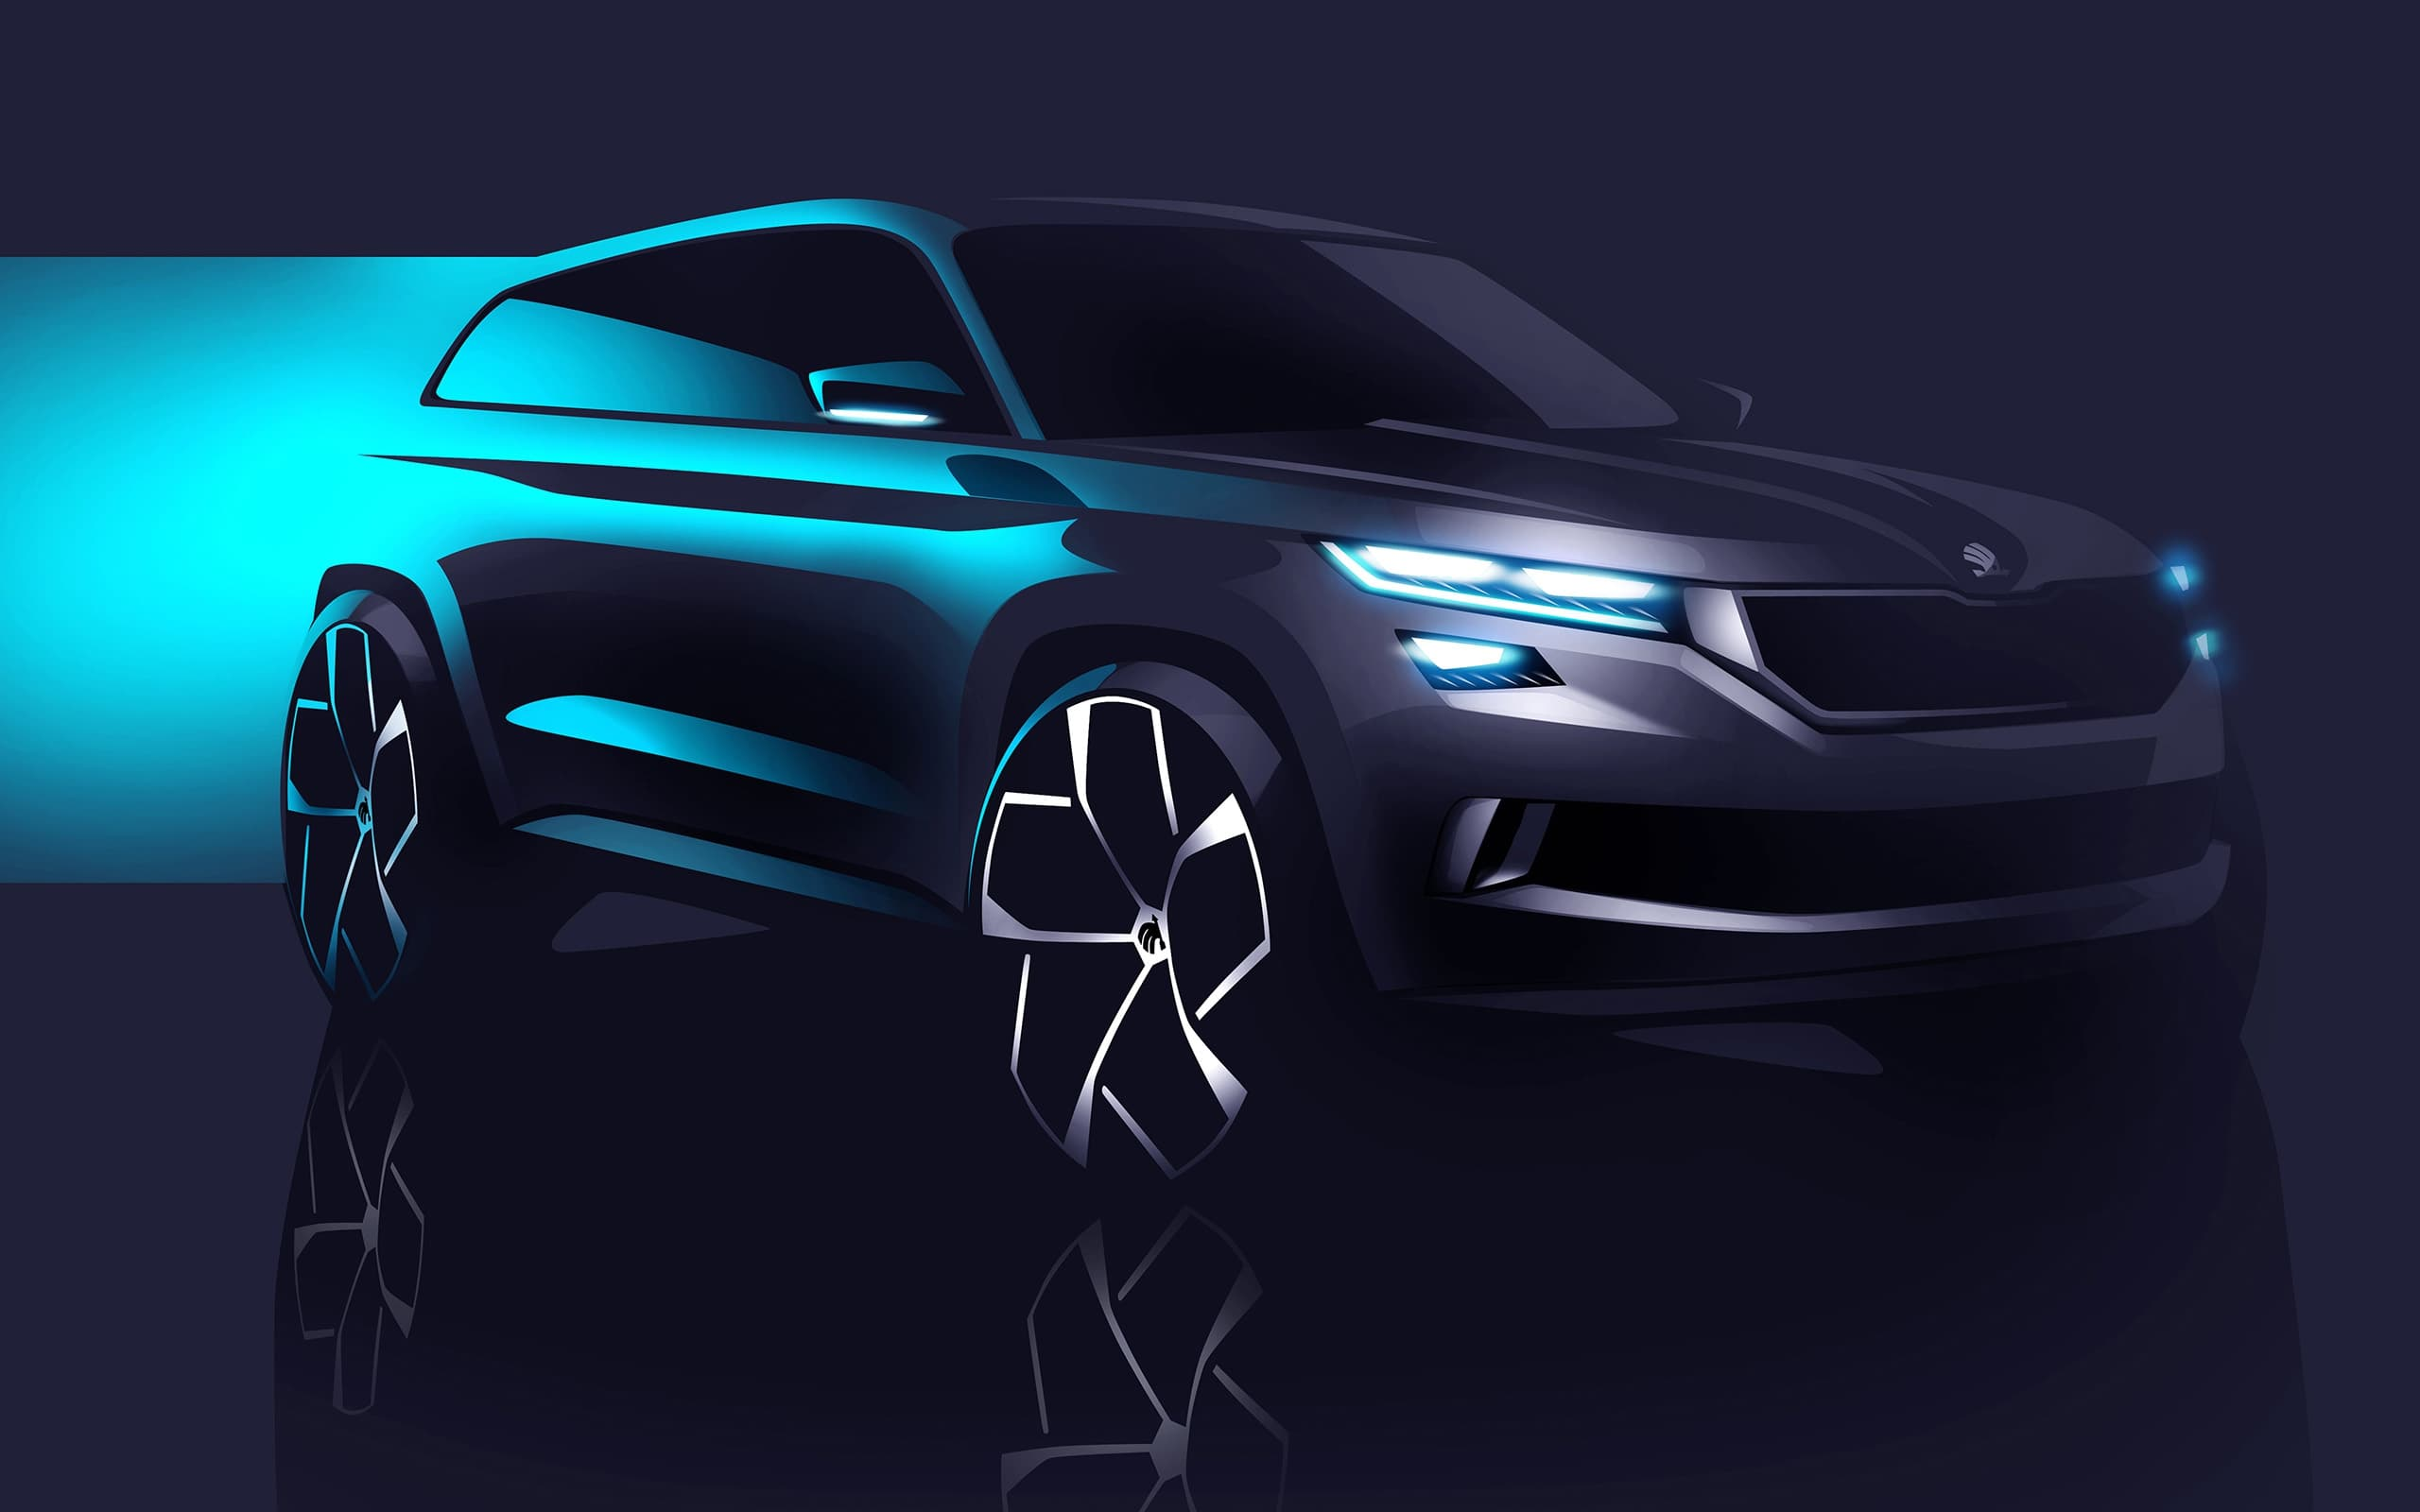 Bmw Blue Cars Wallpapers 2016 Skoda Vision S Concept Wallpapers Blue Green High